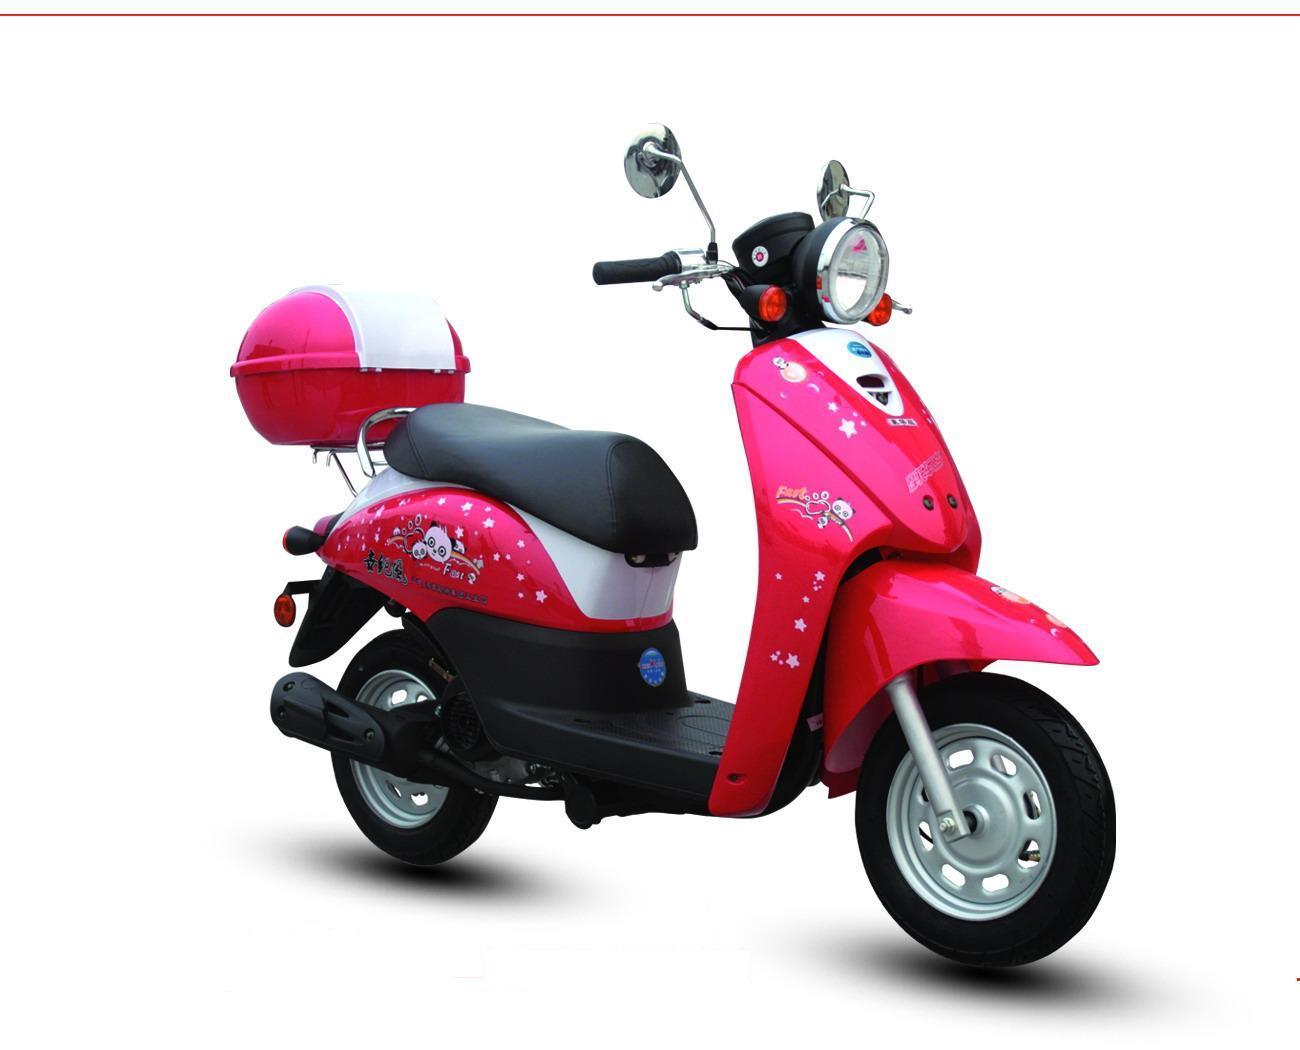 china 50cc scooter china scooter gas scooter. Black Bedroom Furniture Sets. Home Design Ideas